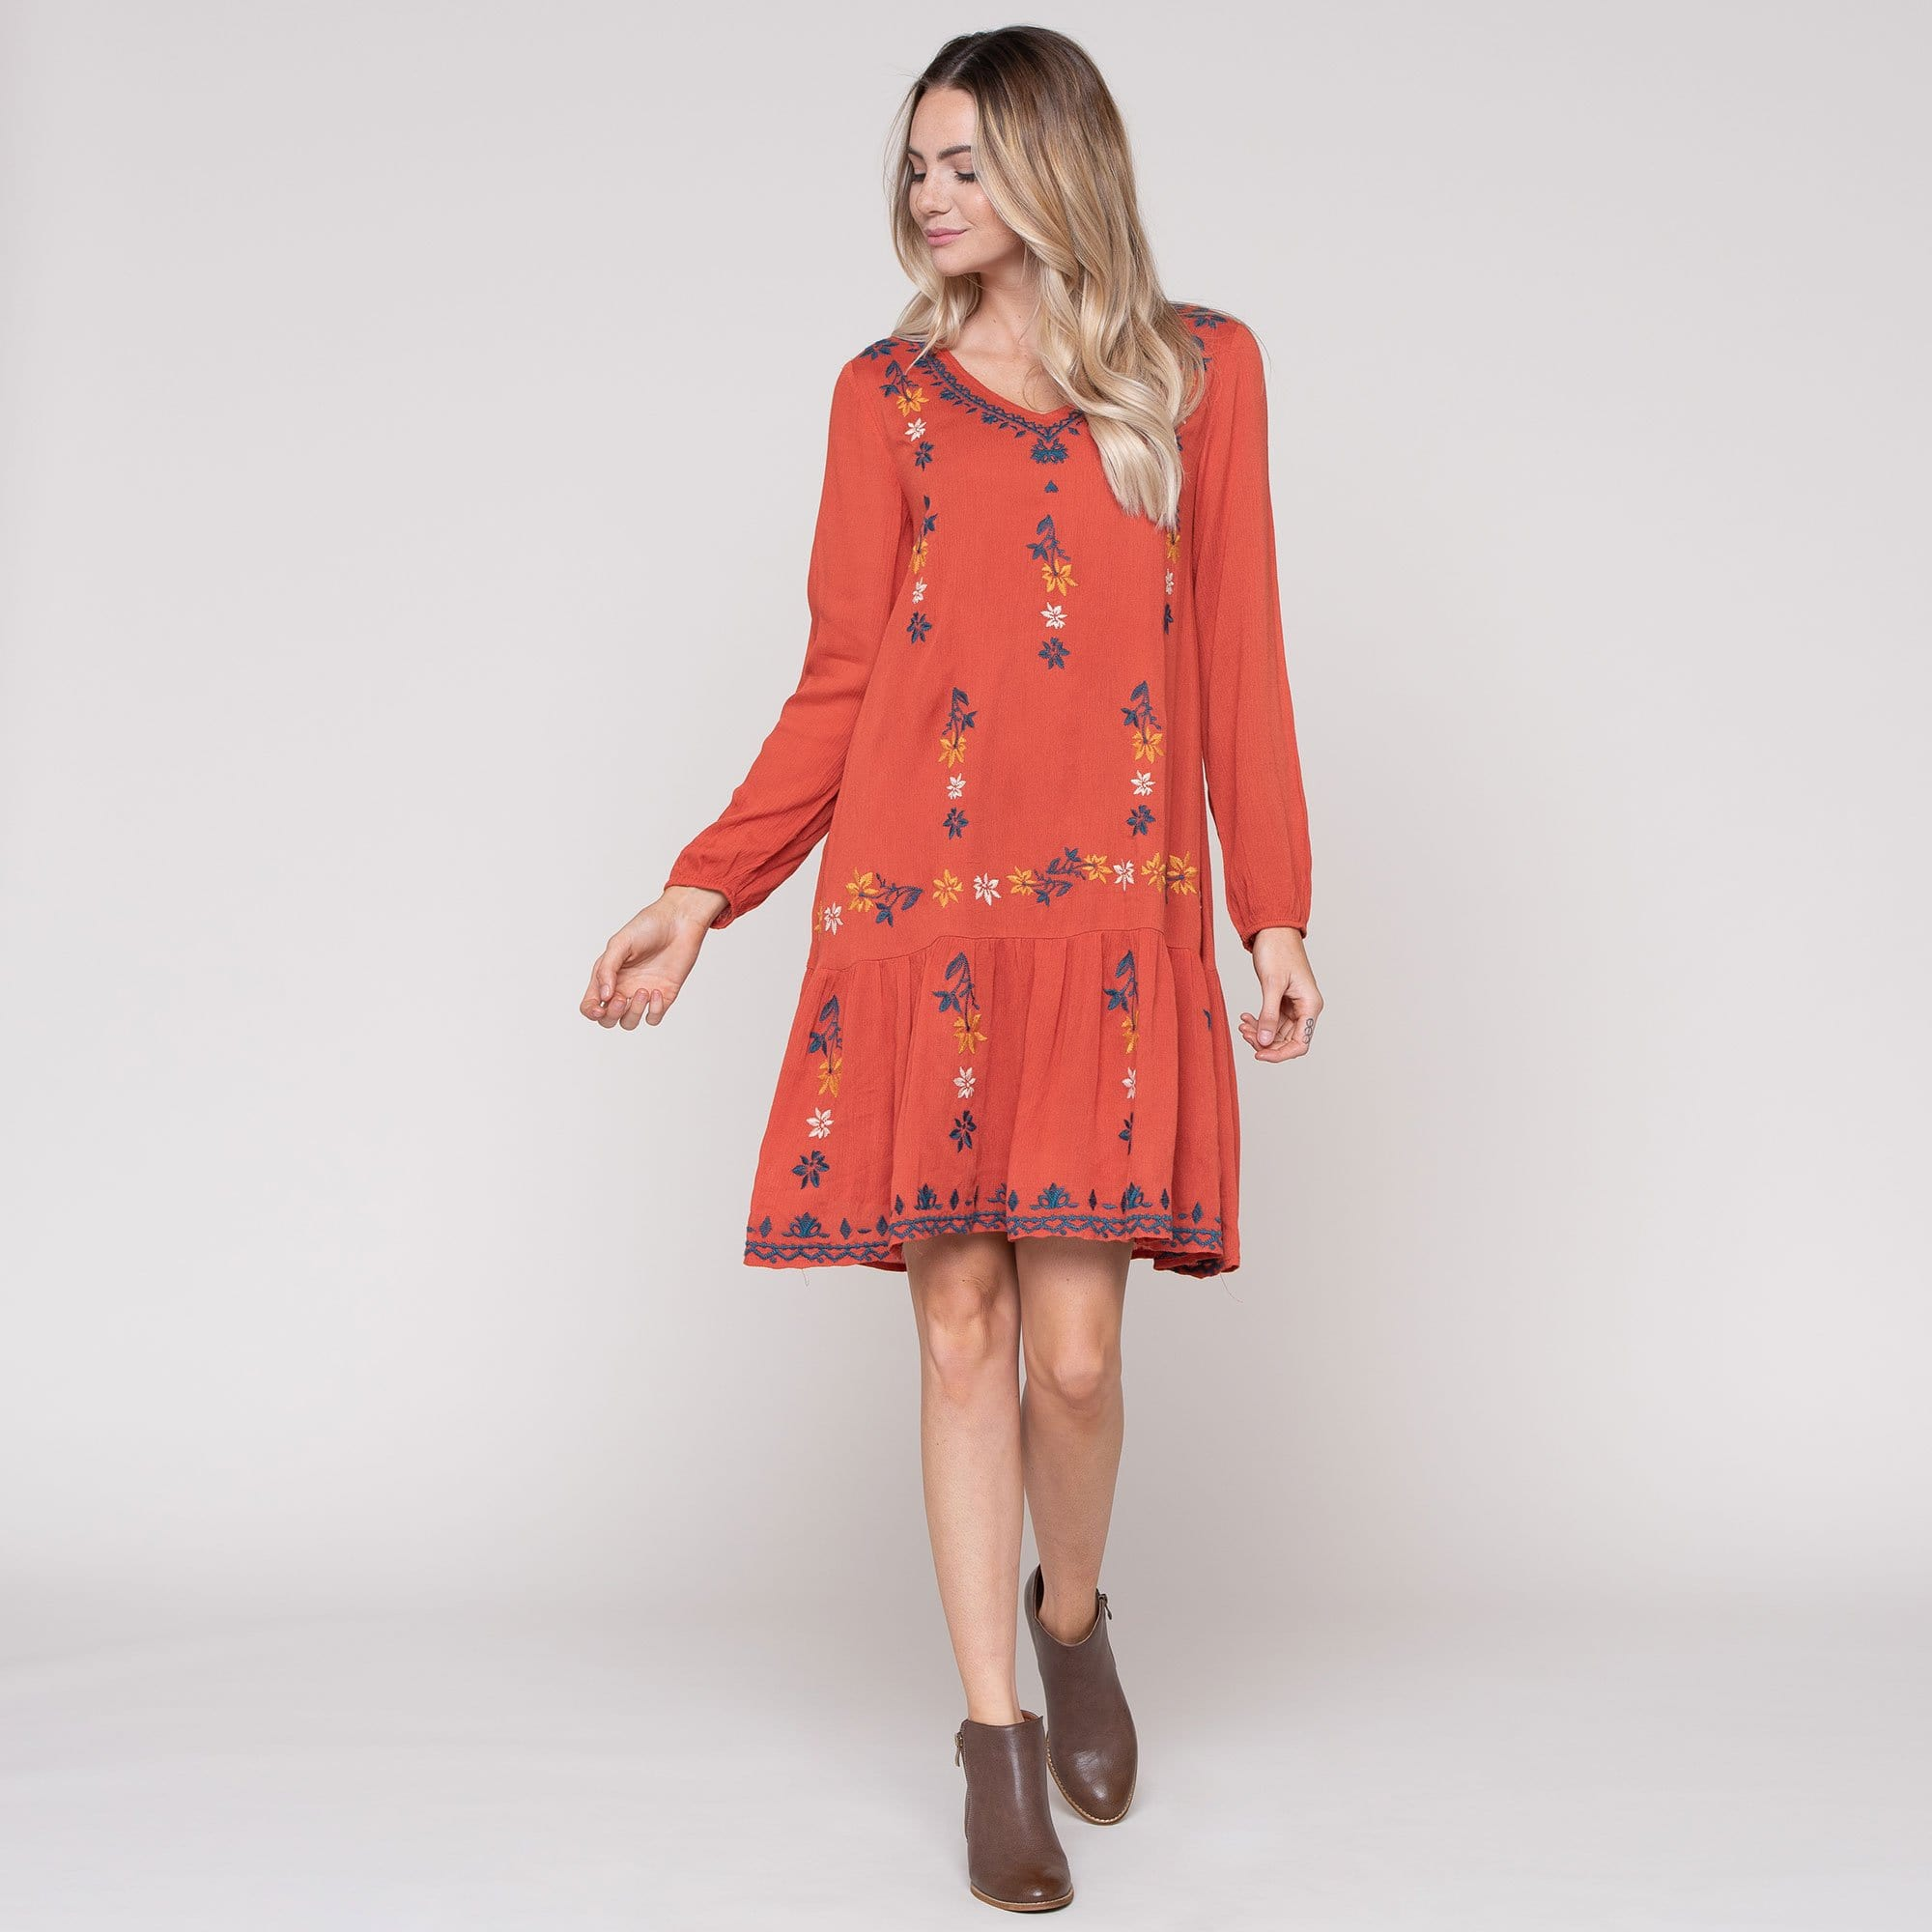 Sherwood Embroidered Dress